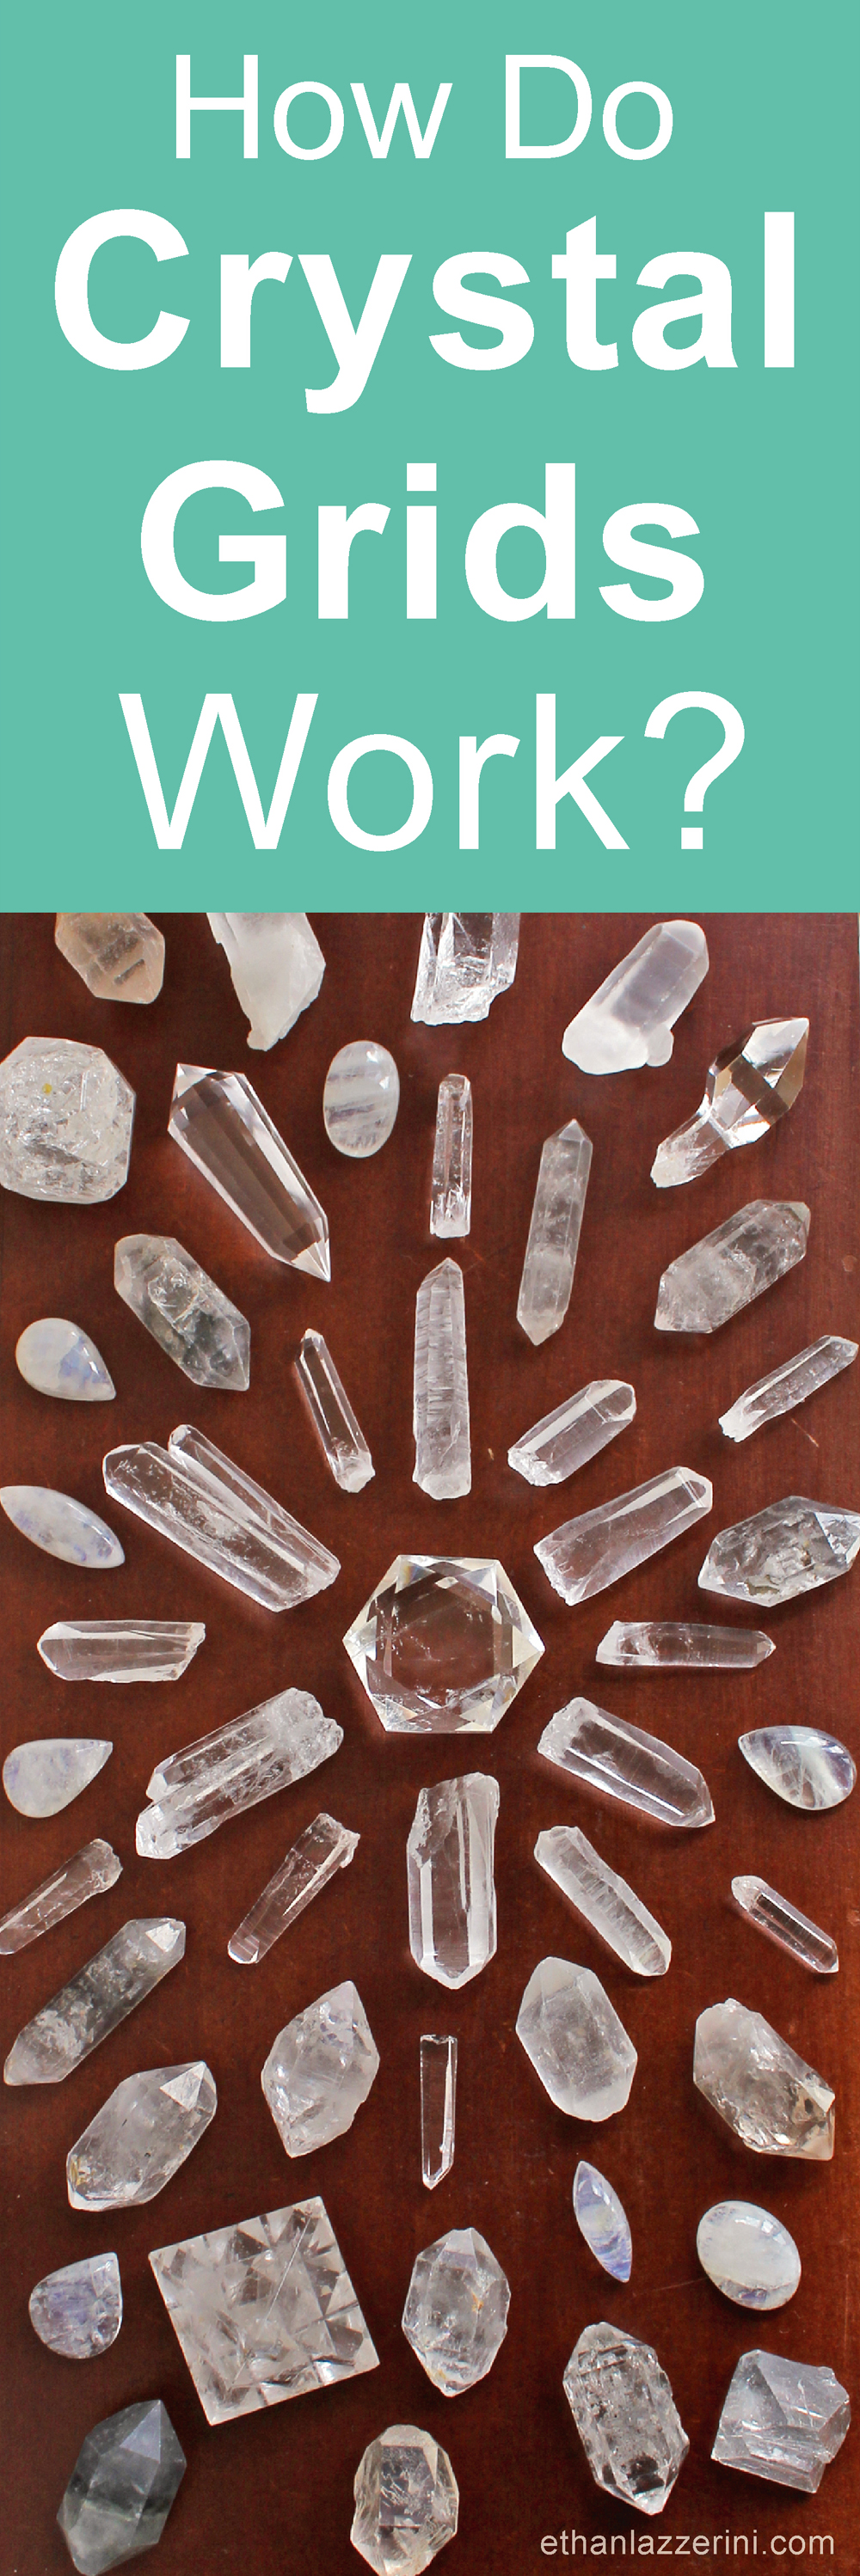 how do crystal grids work?